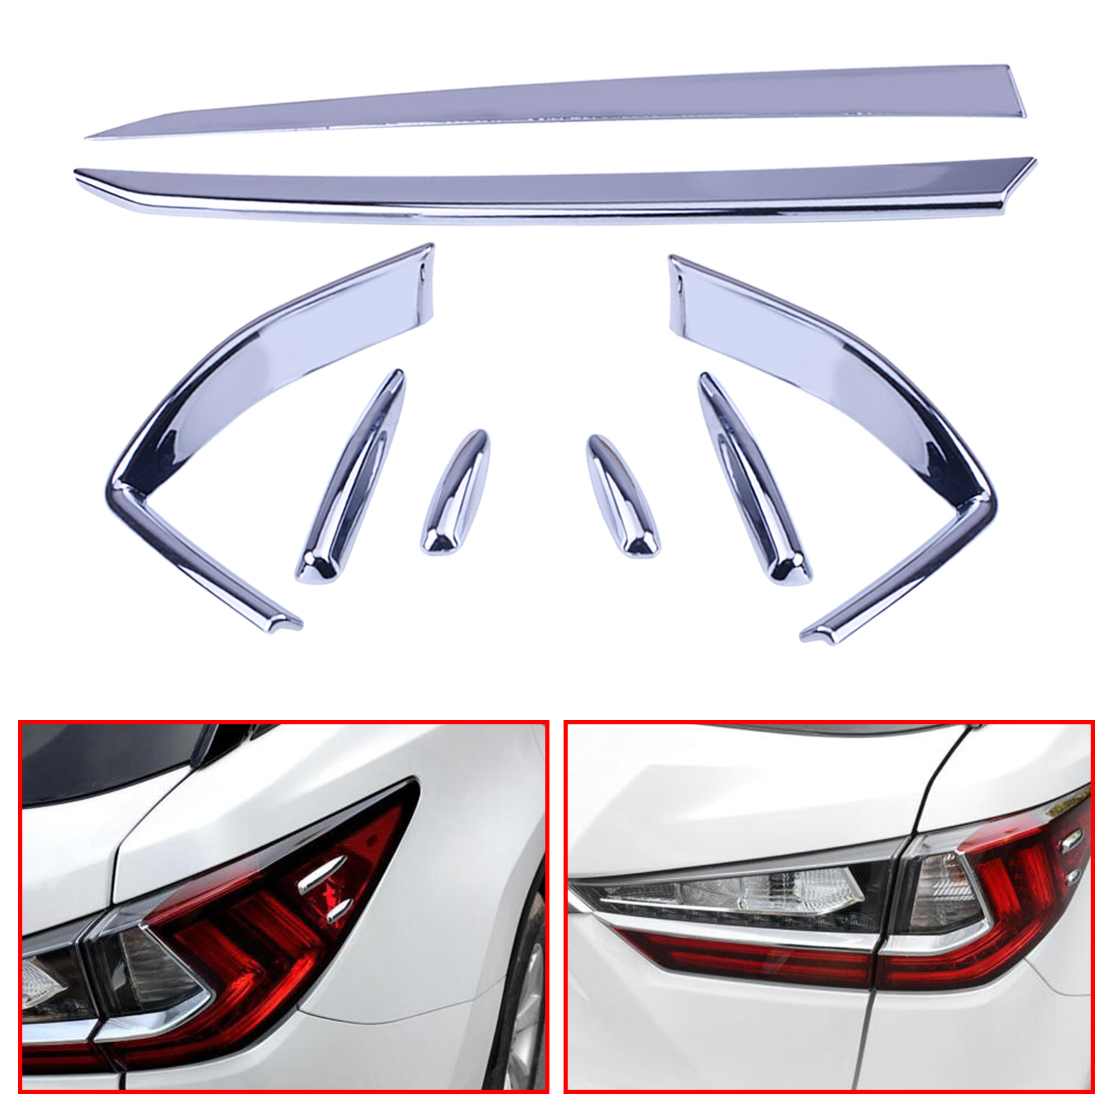 CITALL 8pcs Car Styling Chrome Plated Rear Fog Lamp Frame Cover Trim fit for Lexus RX